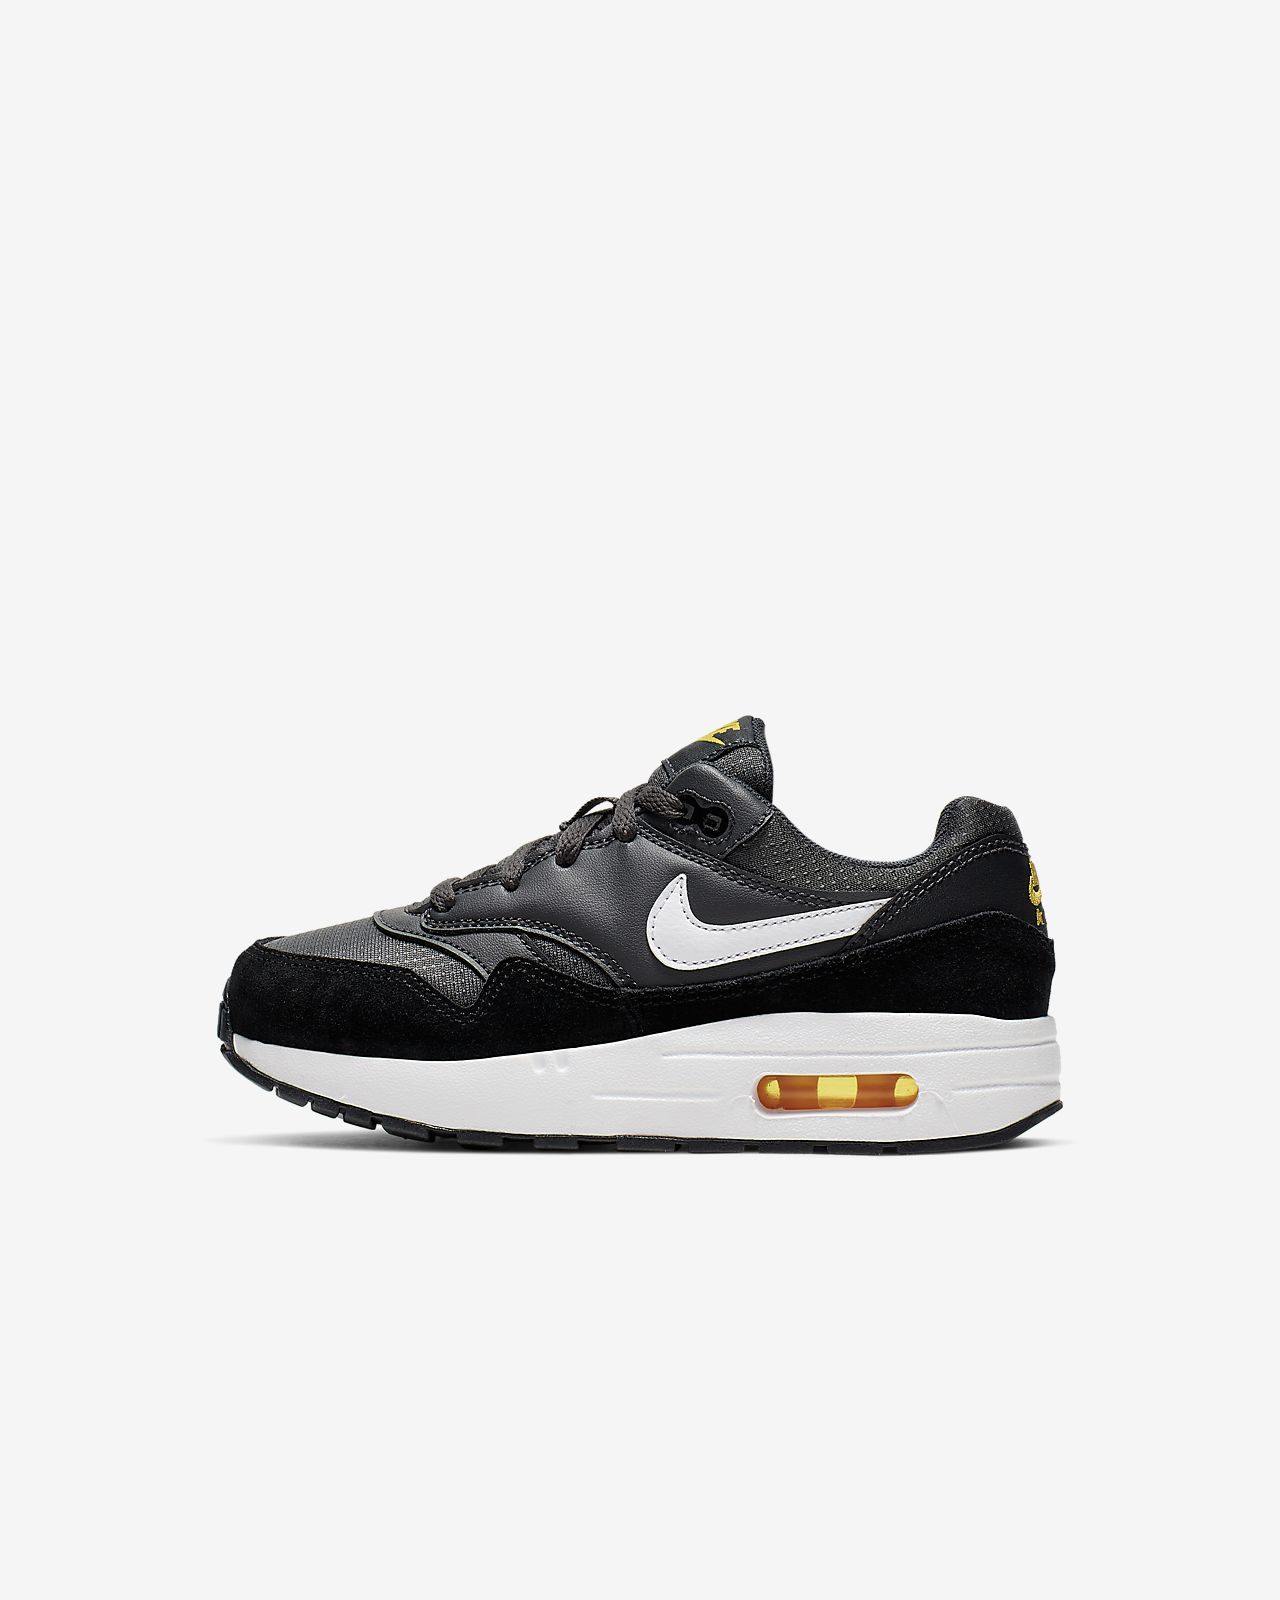 timeless design d66b6 2f941 Little Kids  Shoe. Nike Air Max 1